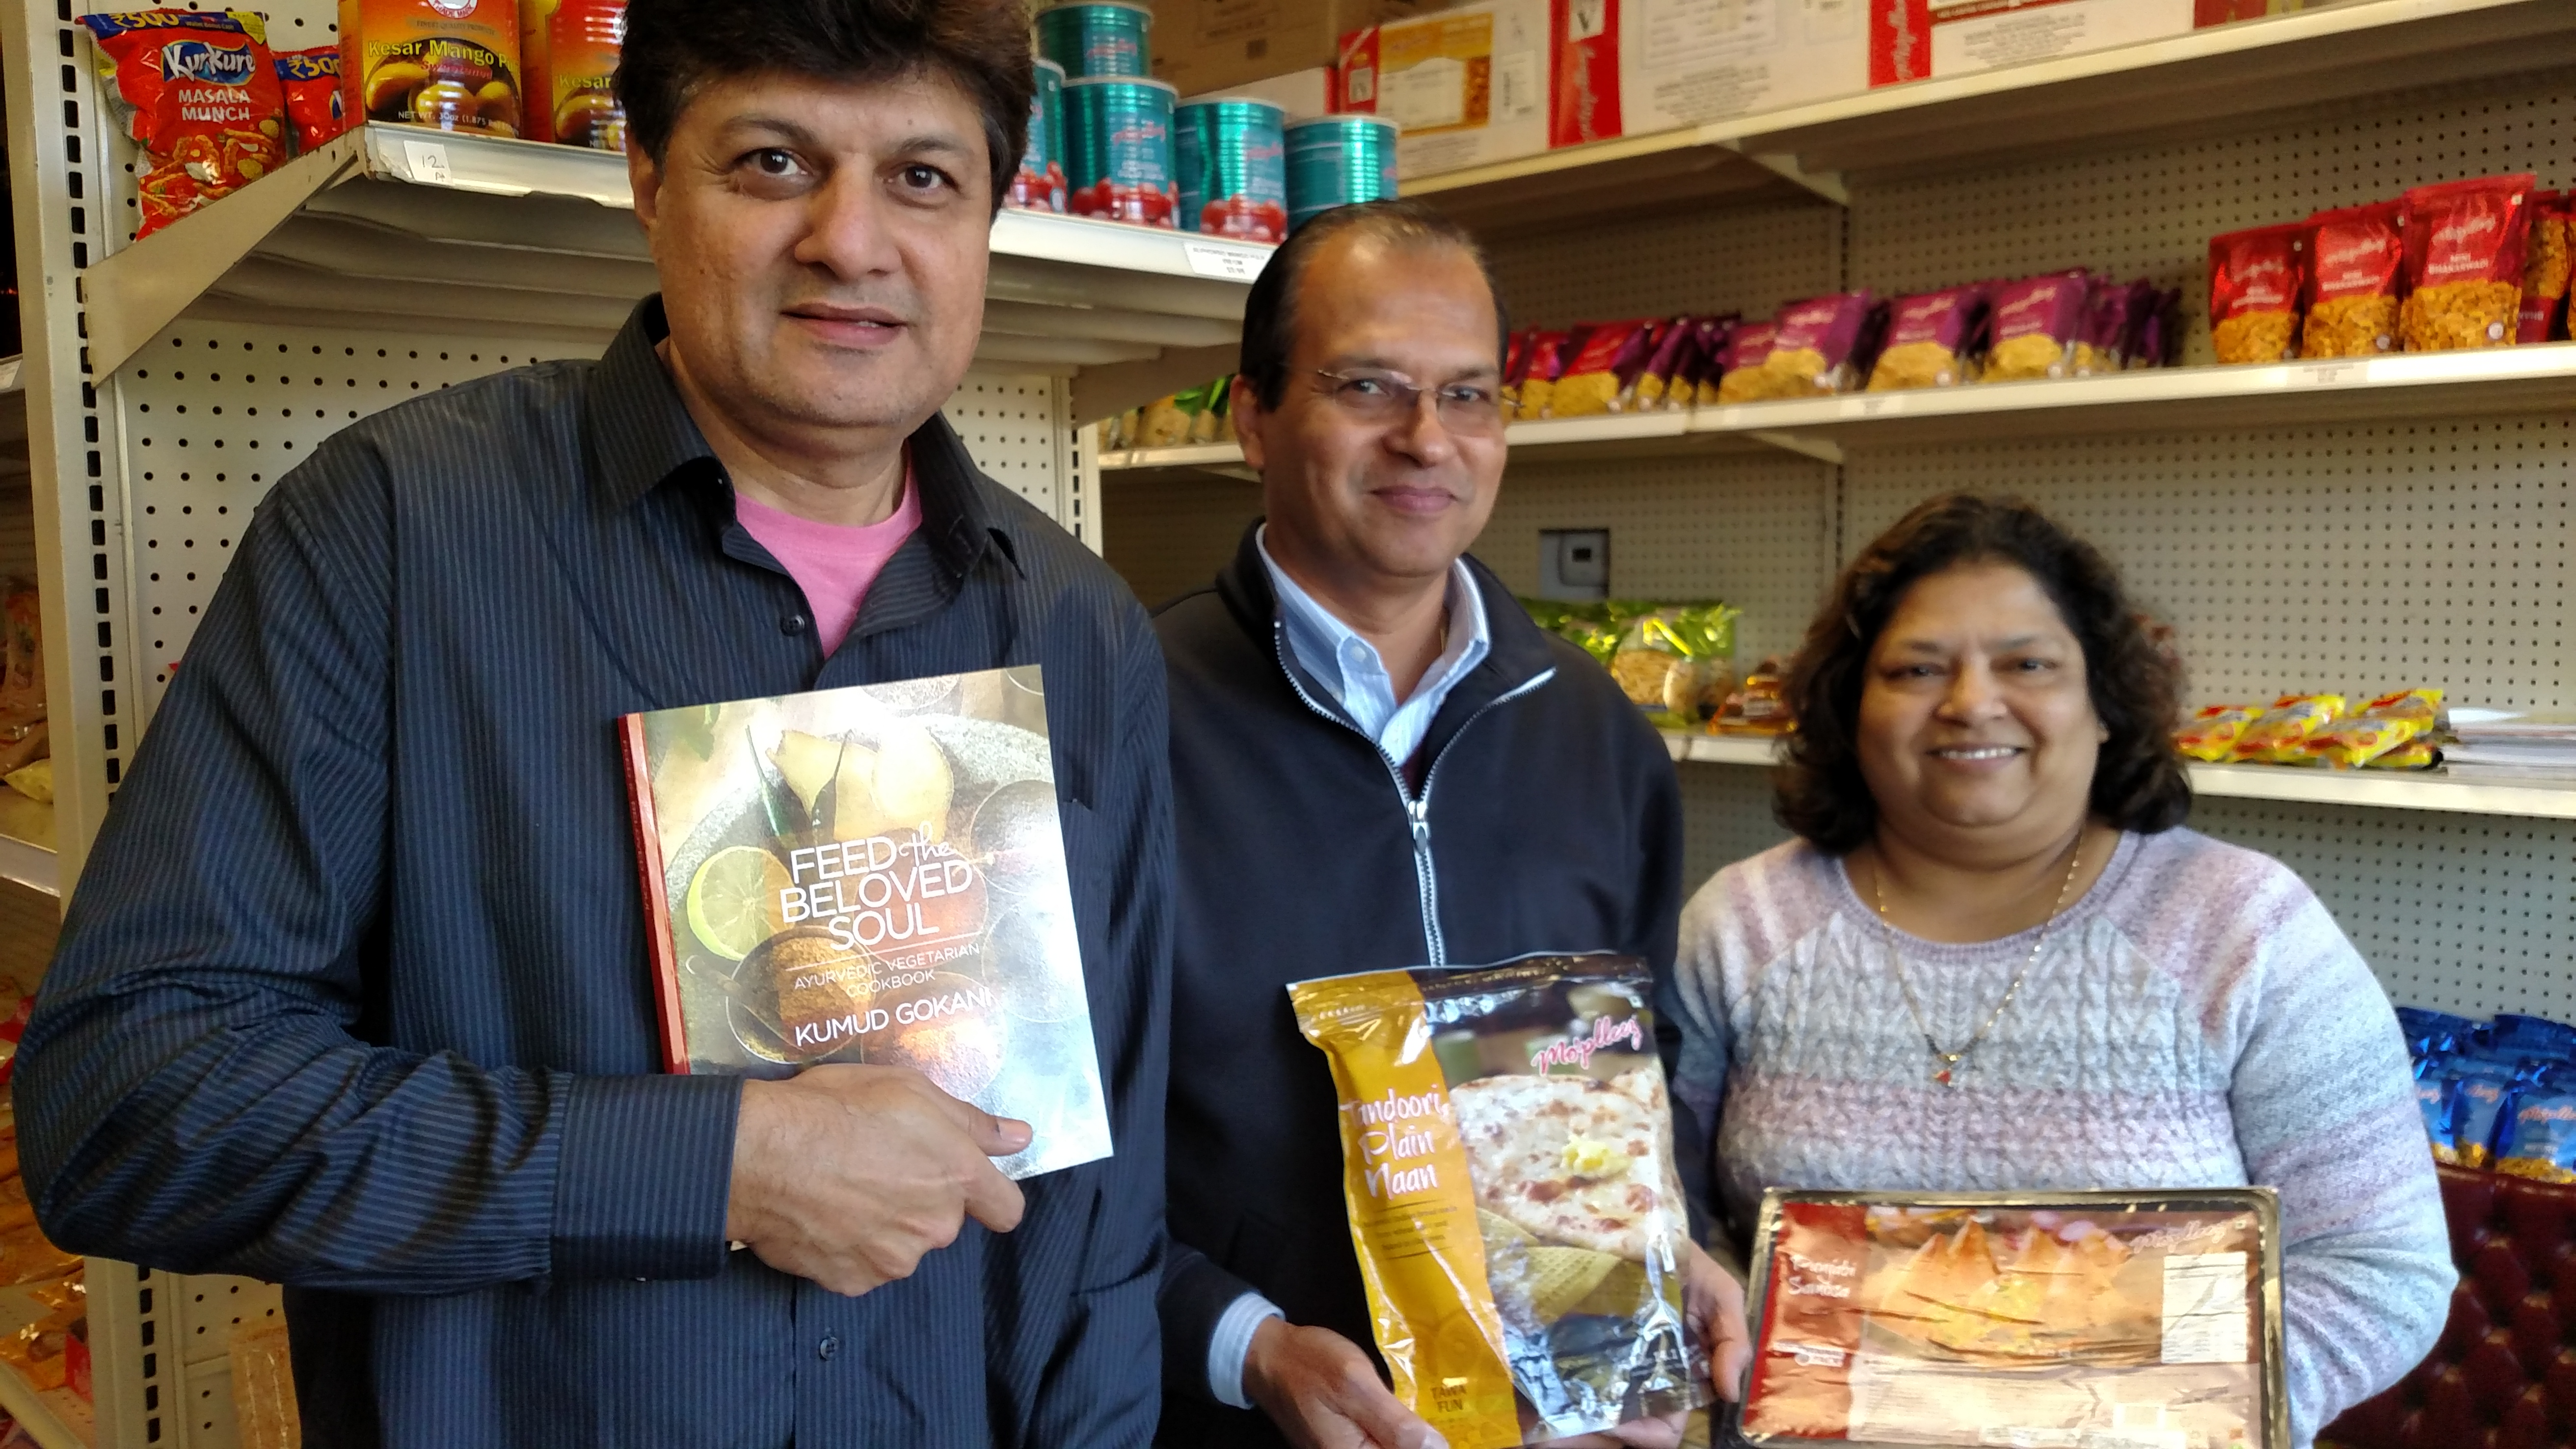 Kaarma Indian Grocery partners, Sumesh Bakshi, Avinash Parab and Manali Parab.{ } Photo by Maureen Flanagan Battistella